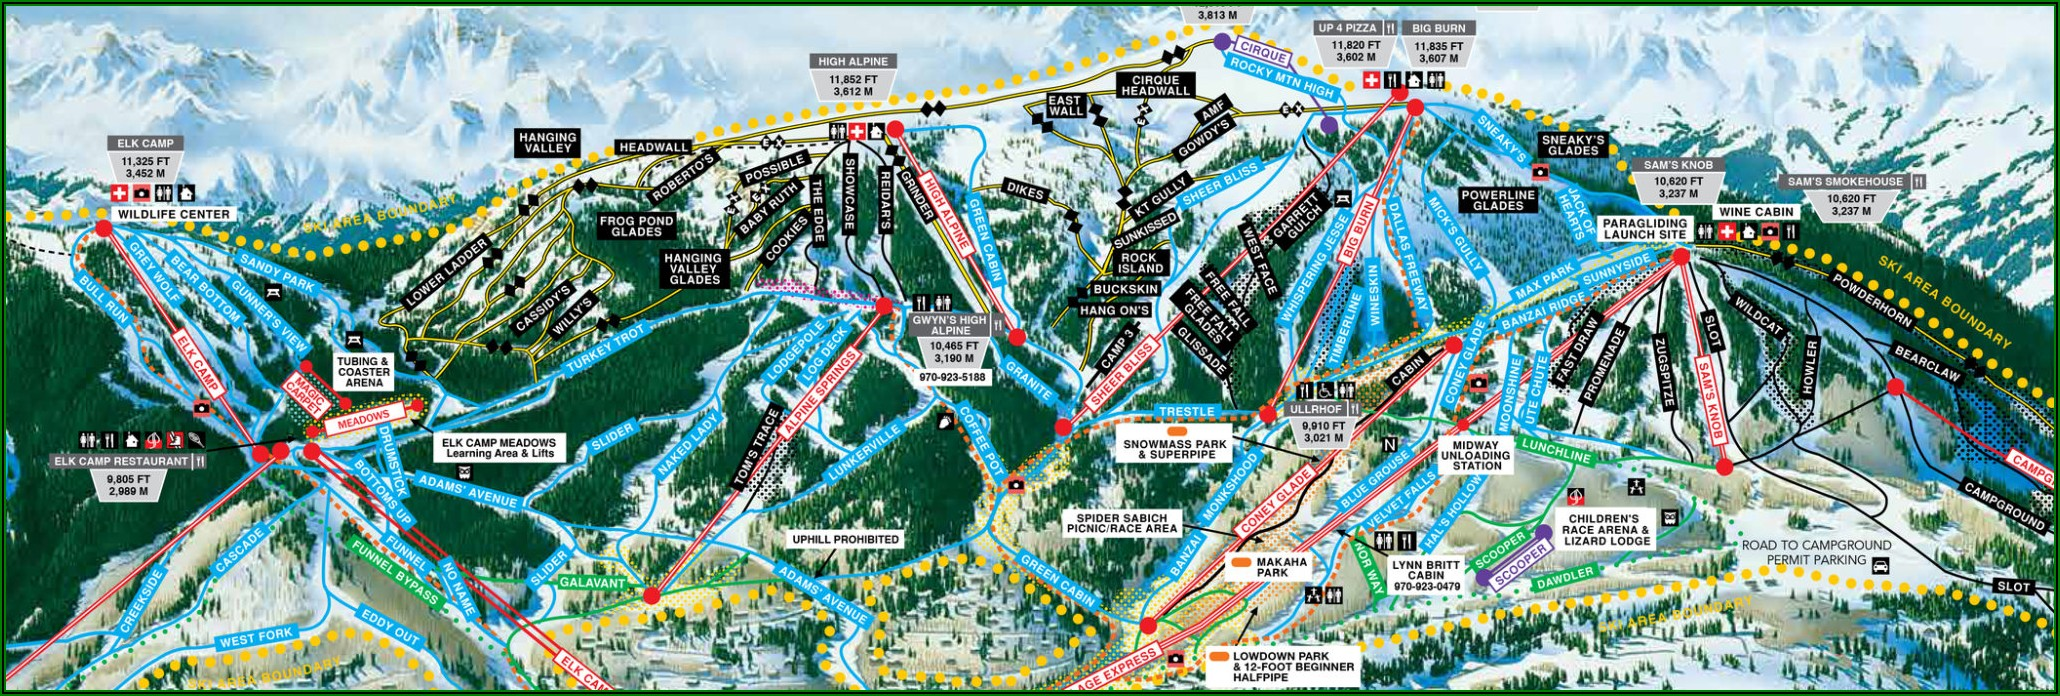 Snowmass Co Lodging Map